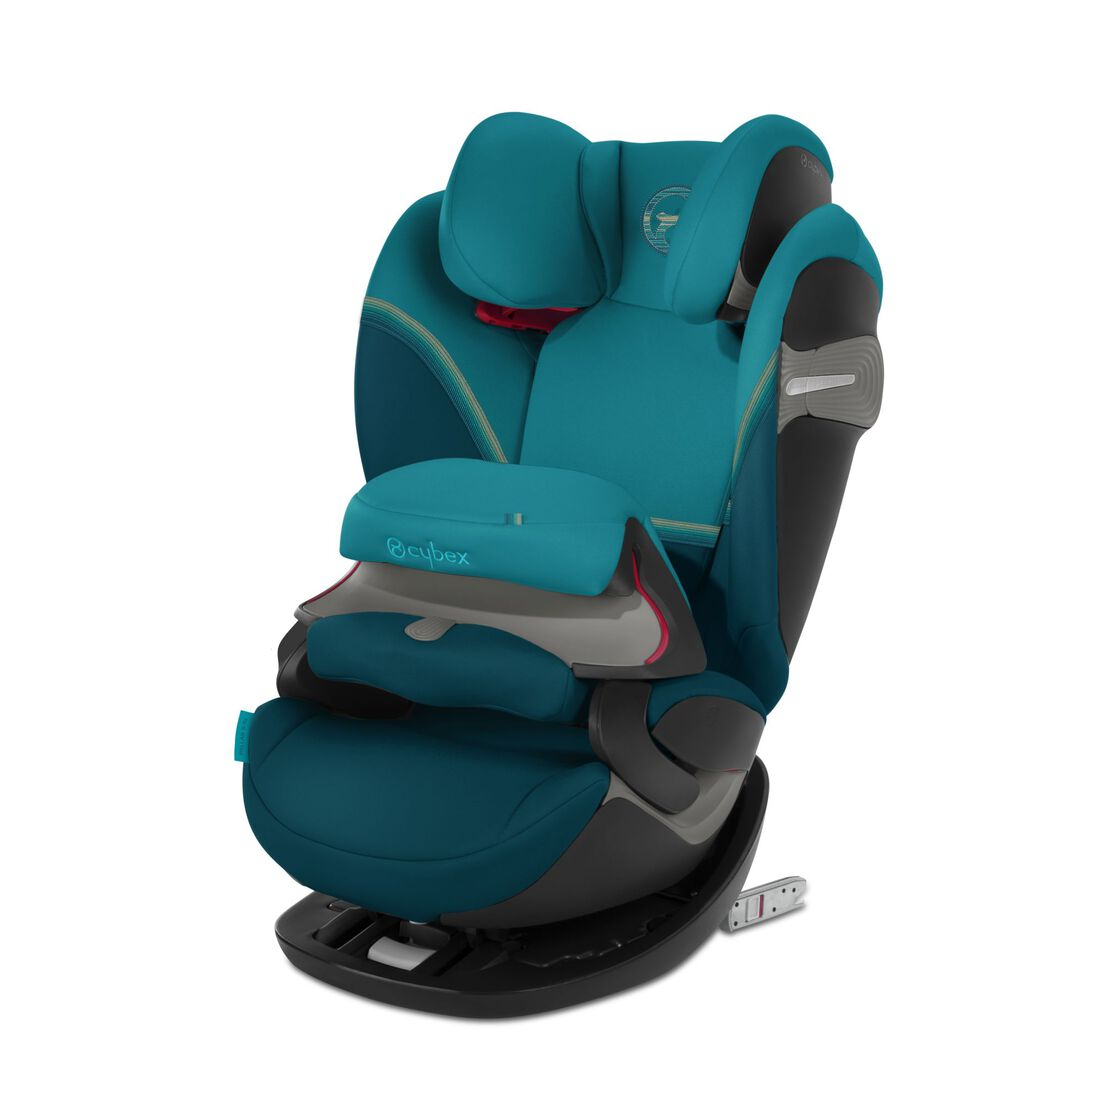 CYBEX Pallas S-fix - River Blue in River Blue large image number 1